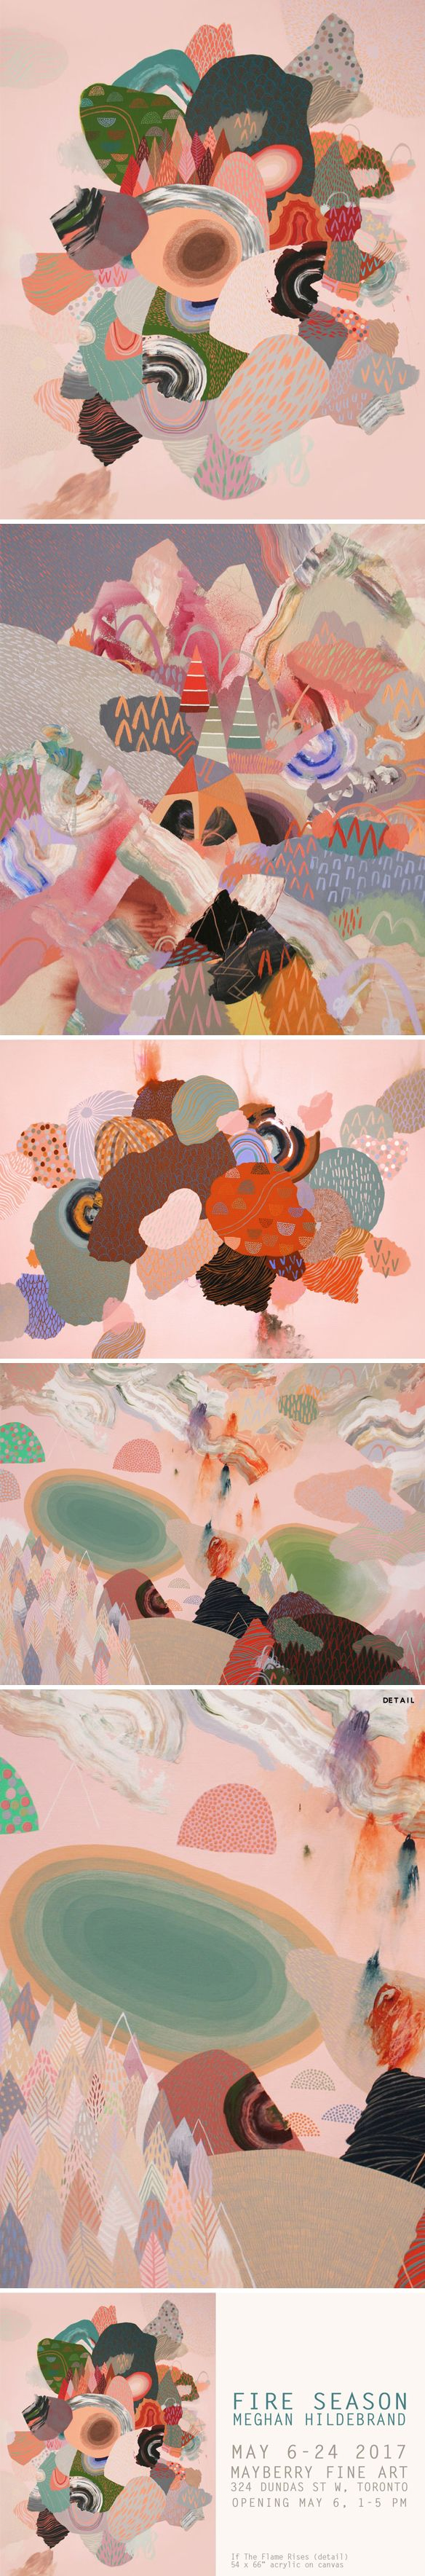 """Meghan Hildebrand - """"Fire Season"""", opens May 6 2017 at Mayberry Fine Art in Toronto"""